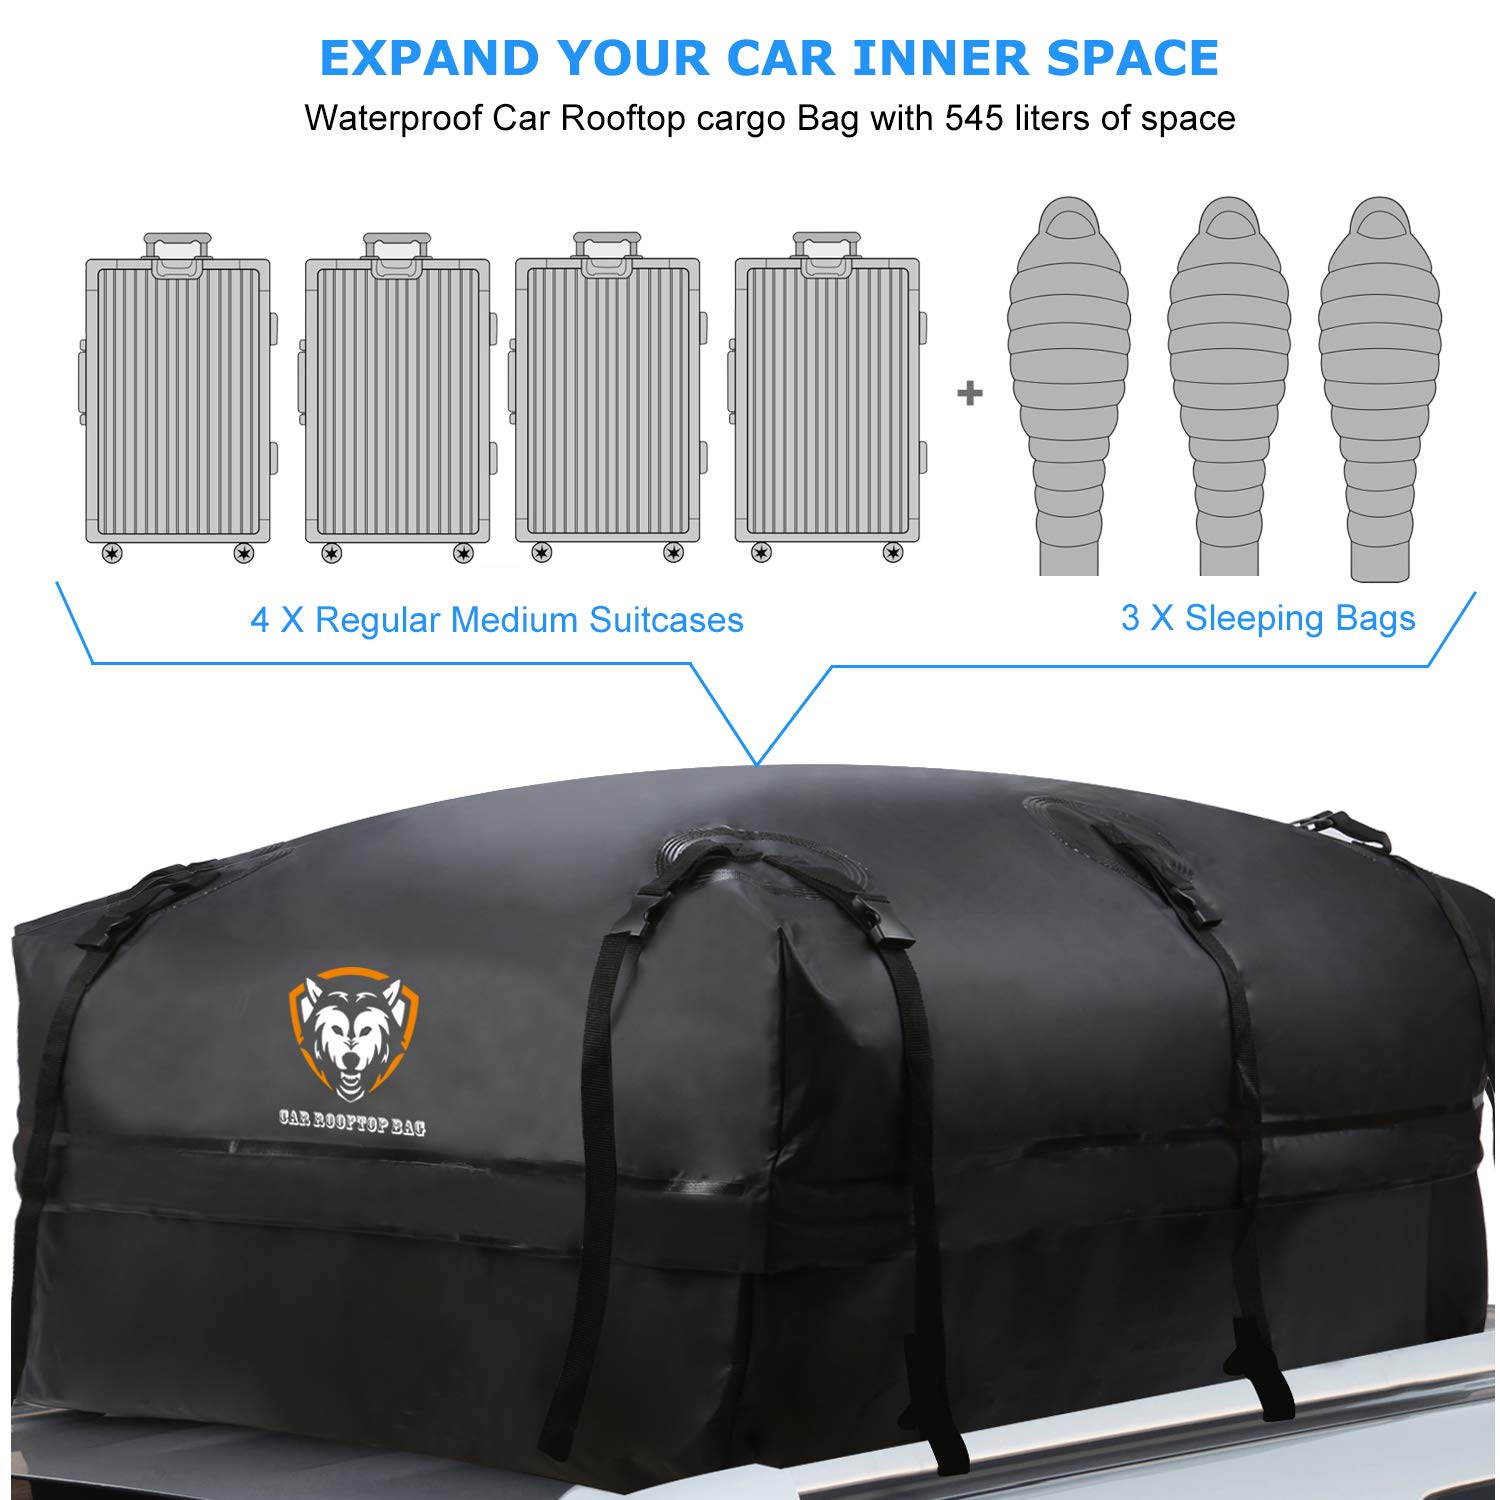 Waterproof Rooftop Cargo Carrier 10 Reinforced Straps Van With//Without Rack SUV Truck Heavy Duty Roof Top Luggage Storage Bag with Anti-slip Mat 19 Cubic Feet Perfect for Car 6 Door Hooks